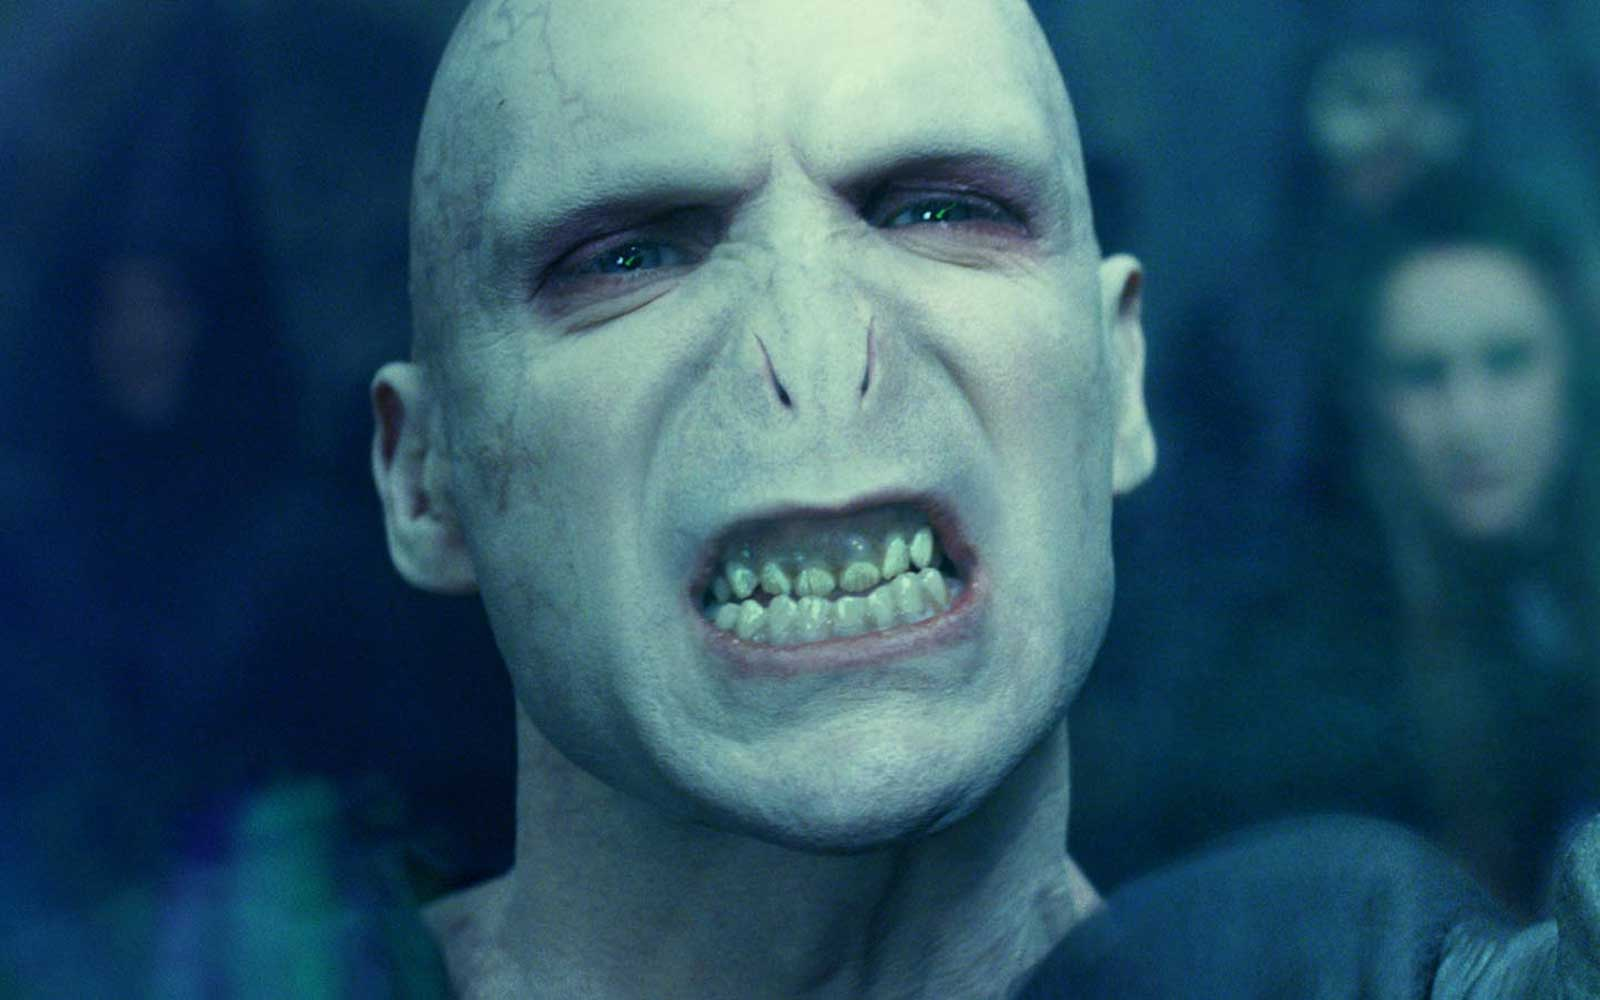 Voldemort Had a Hilarious Dancing Cameo in One of the 'Harry Potter' Films, and You Probably Missed It